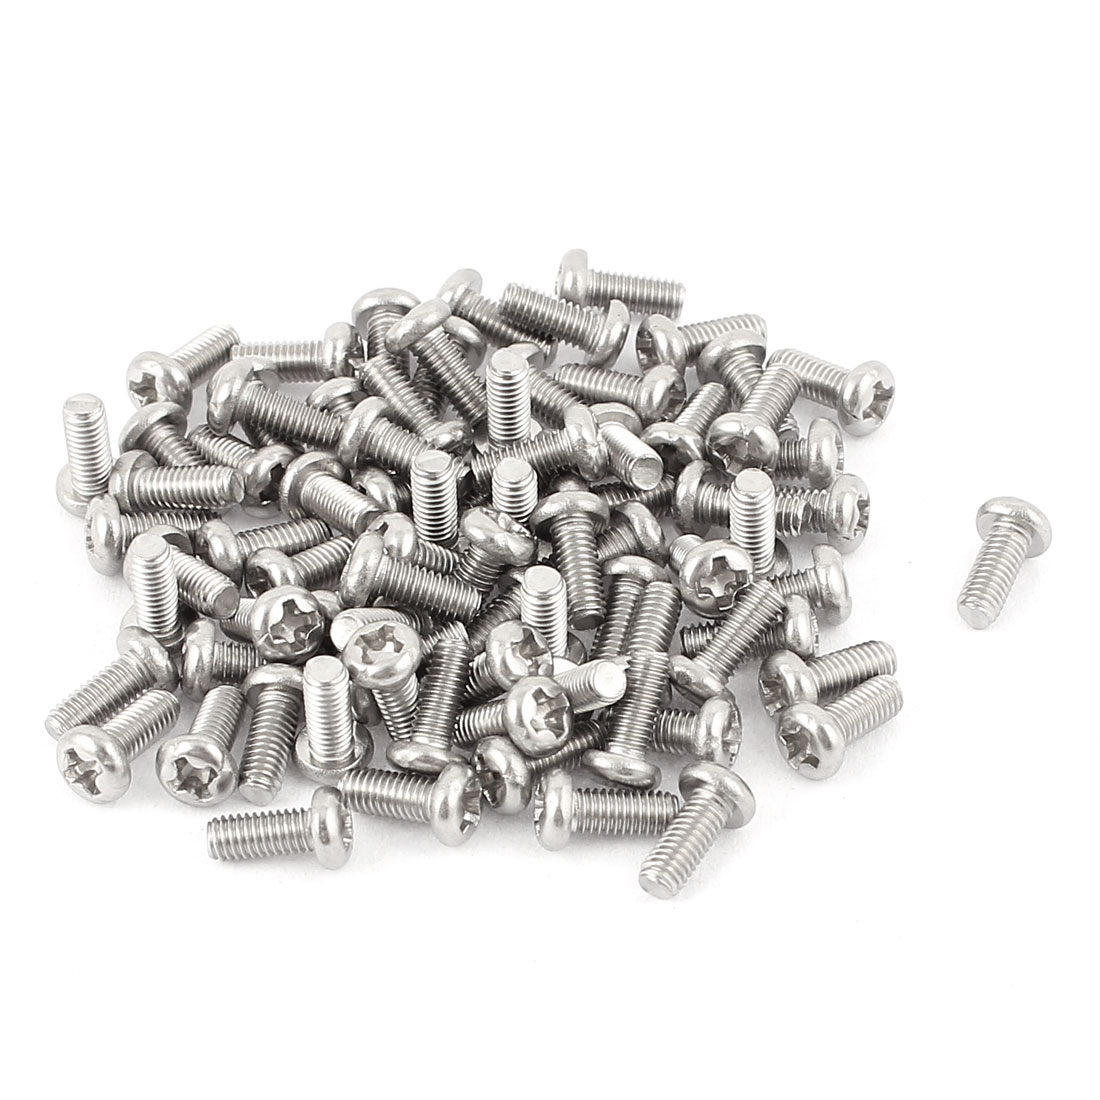 M3 x 7mm 304 Stainless Steel Crosshead Phillips Pan Head Screws Bolts 60pcs